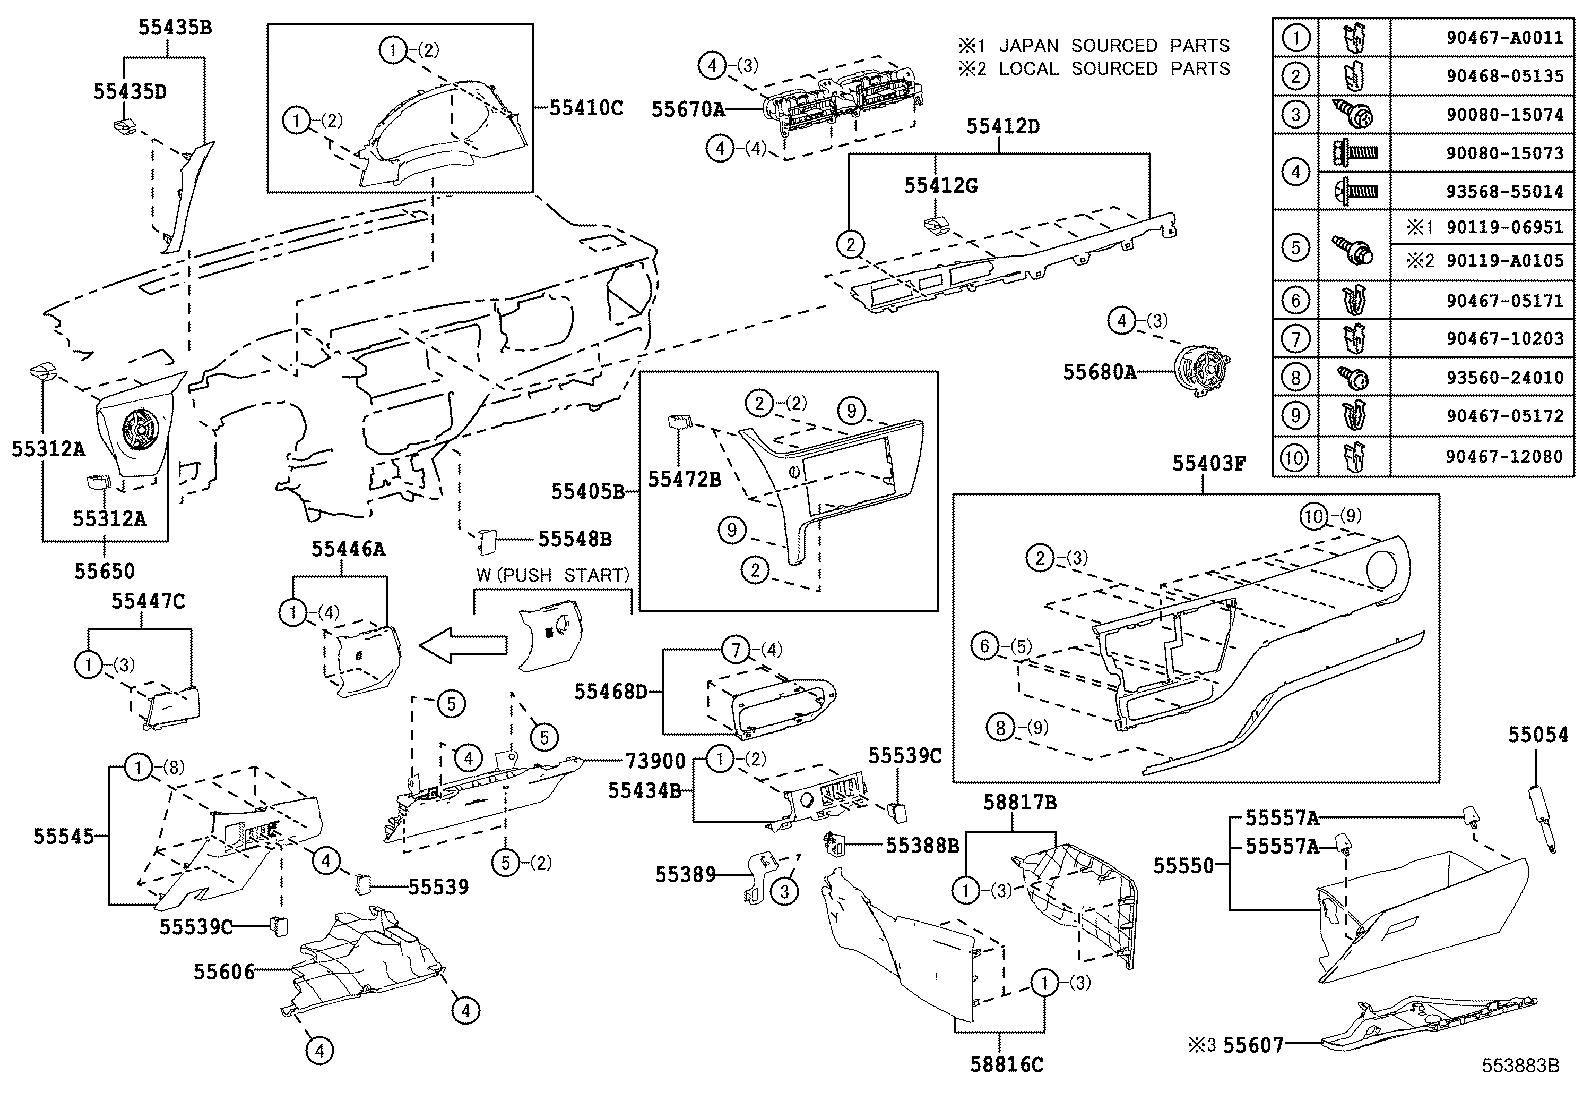 Toyota Corolla Panel Sub Assembly Instrument Cluster